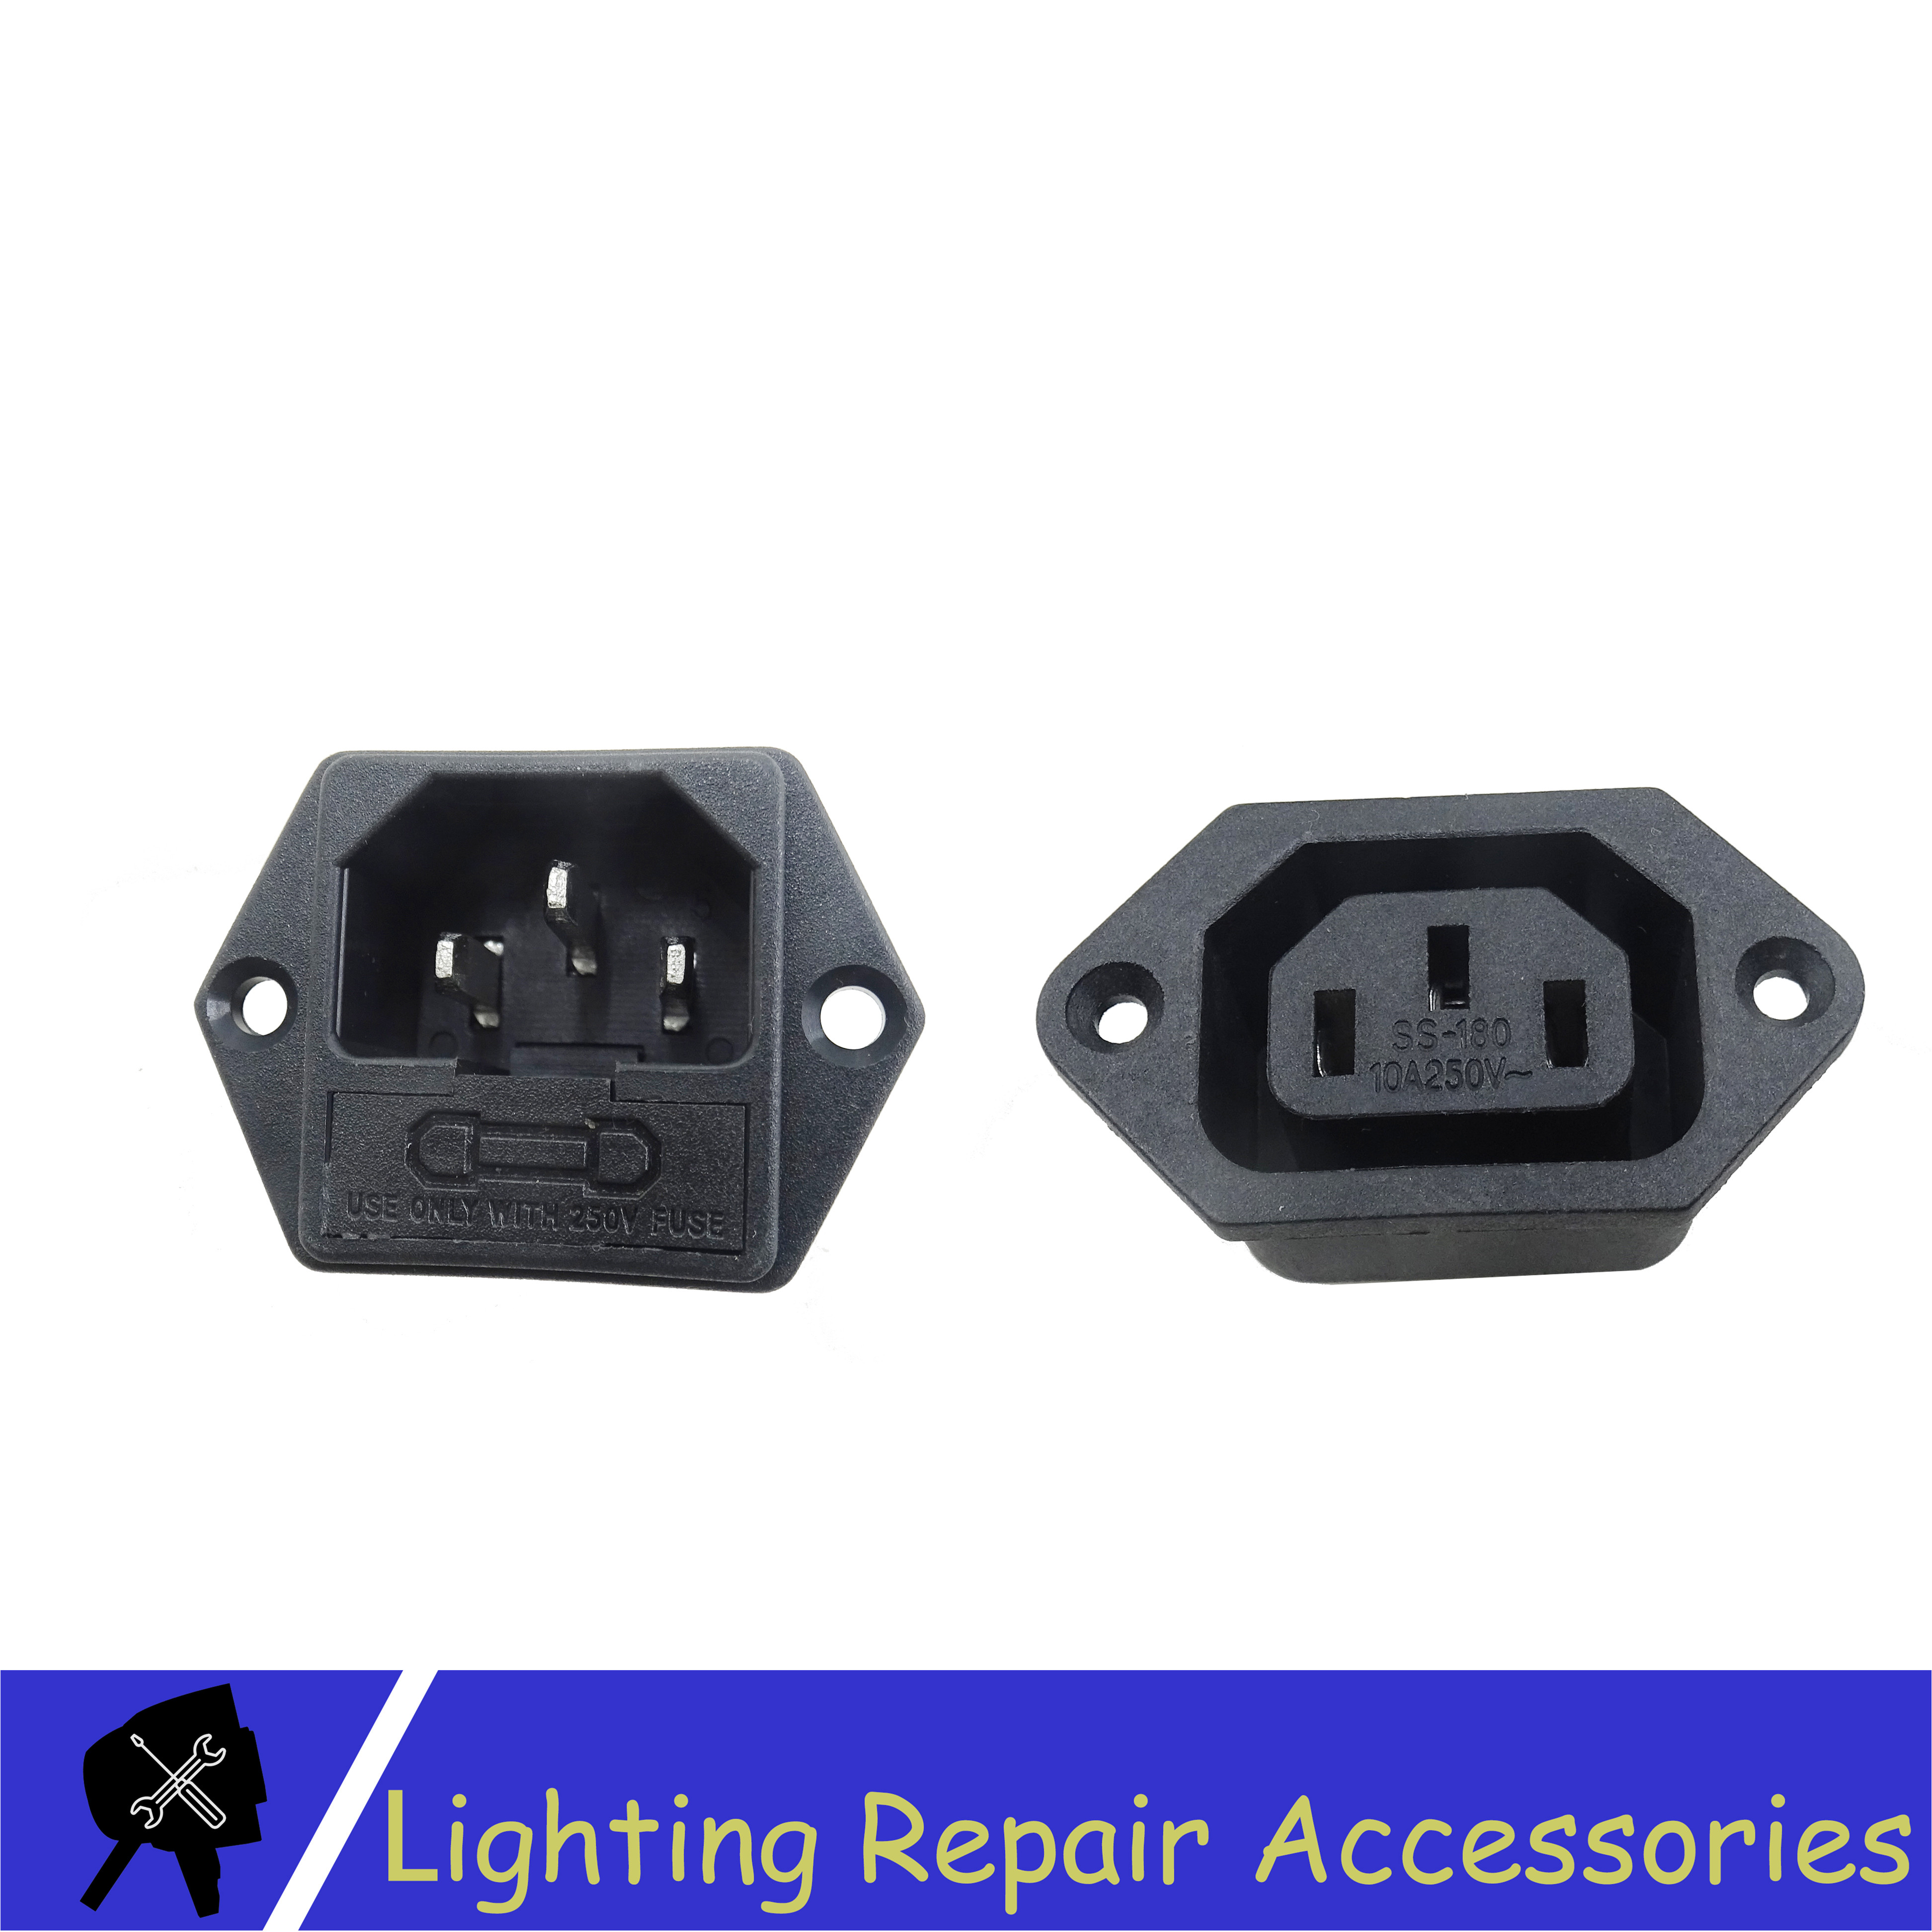 5sets/pcs Power Socket Power Male And Female For 7x12w 12x12w 7x10w 7x18w Led Par Power Input And Output And Electronics